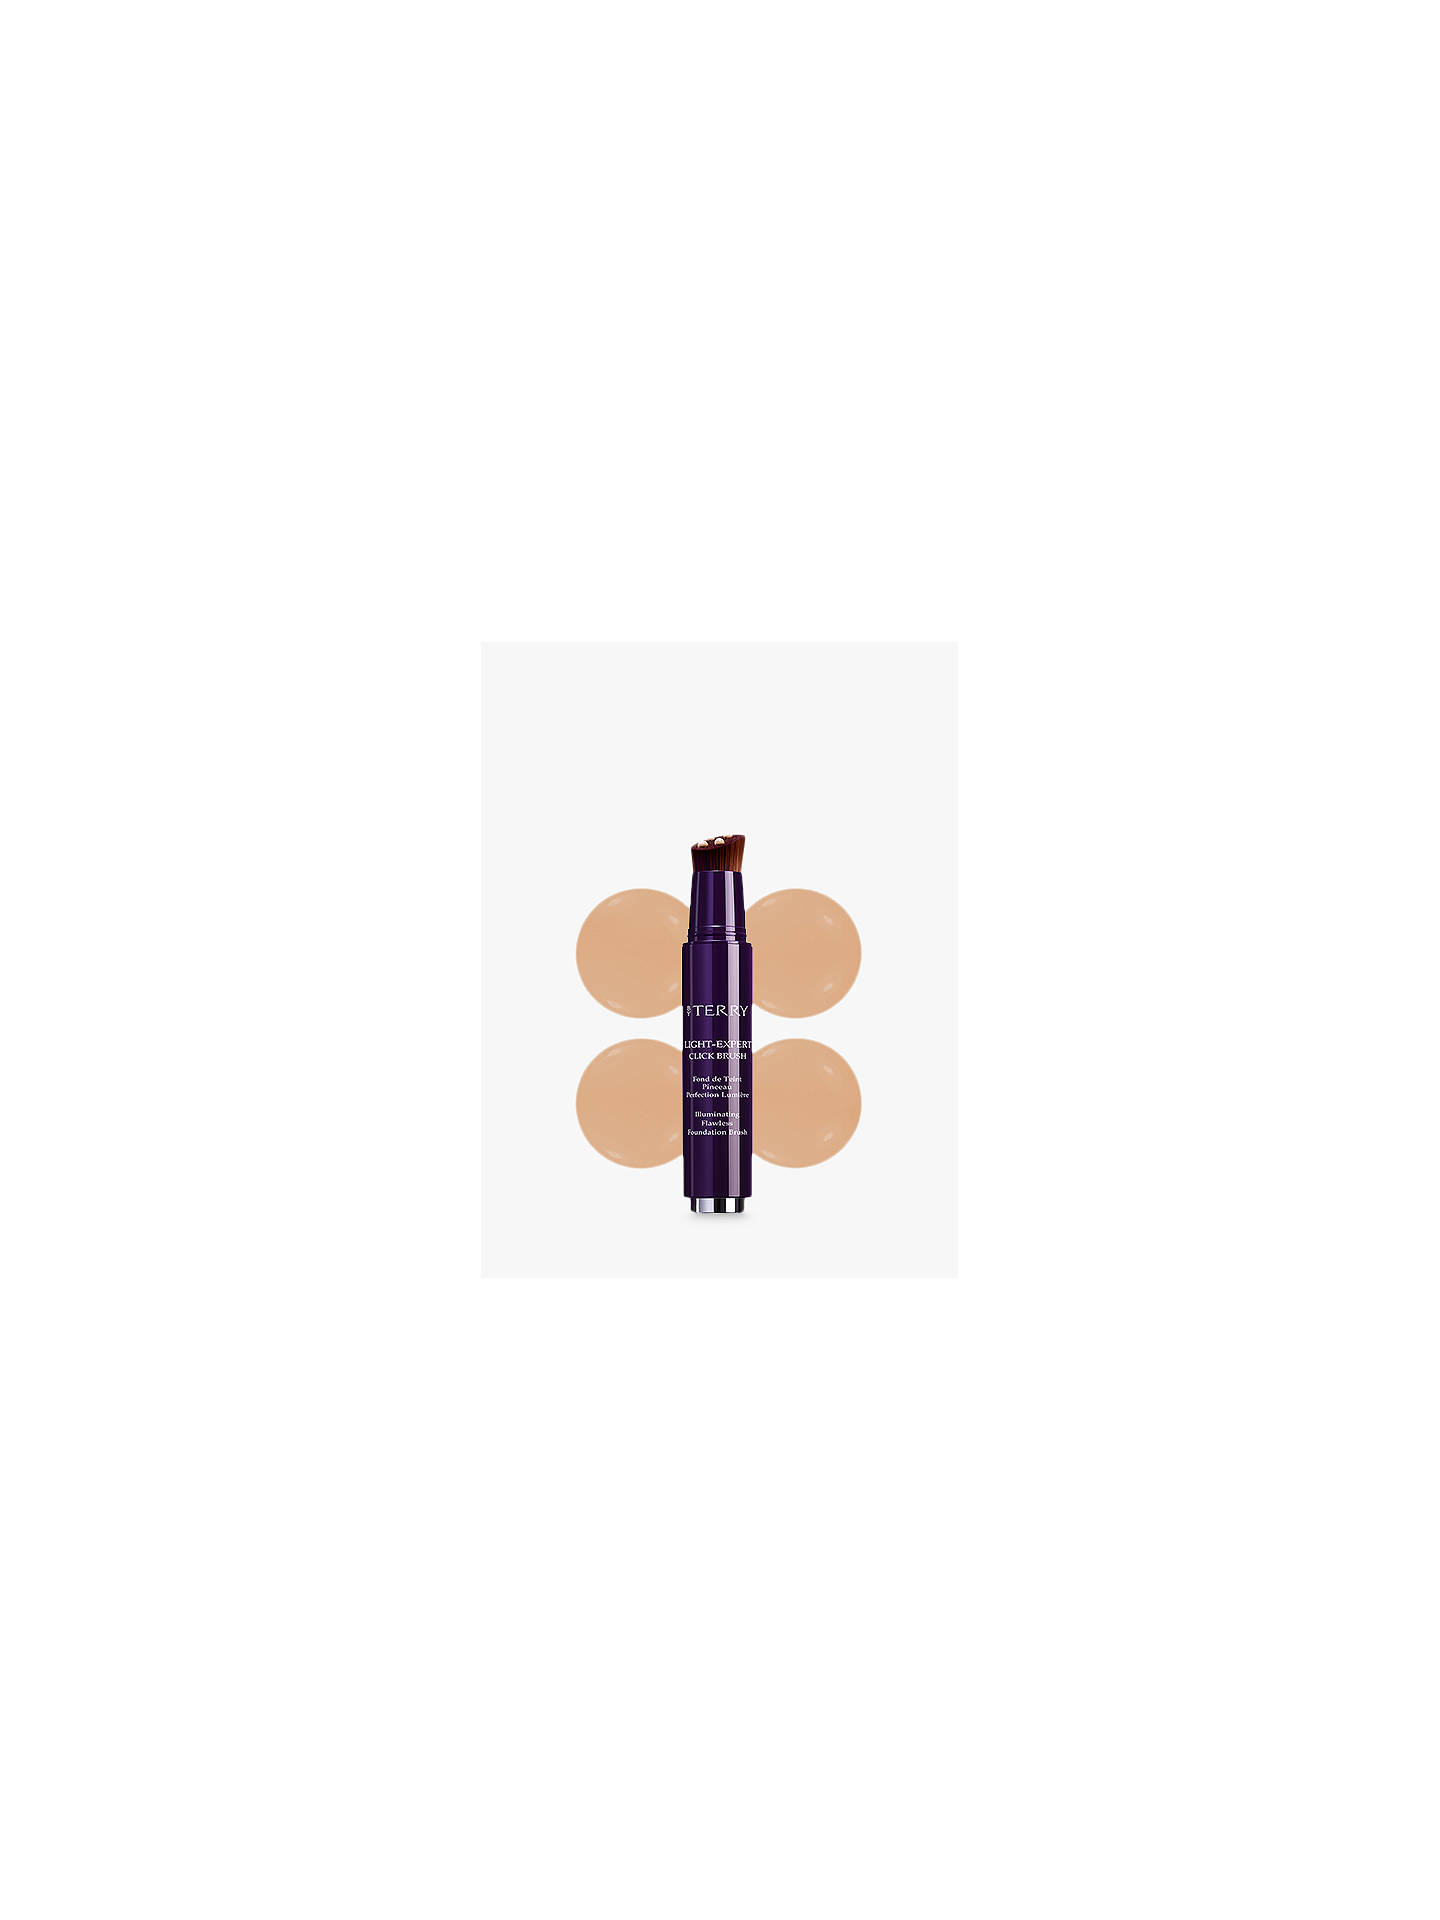 BuyBY TERRY Light-Expert Click Brush Foundation Golden Sand Online at johnlewis.com